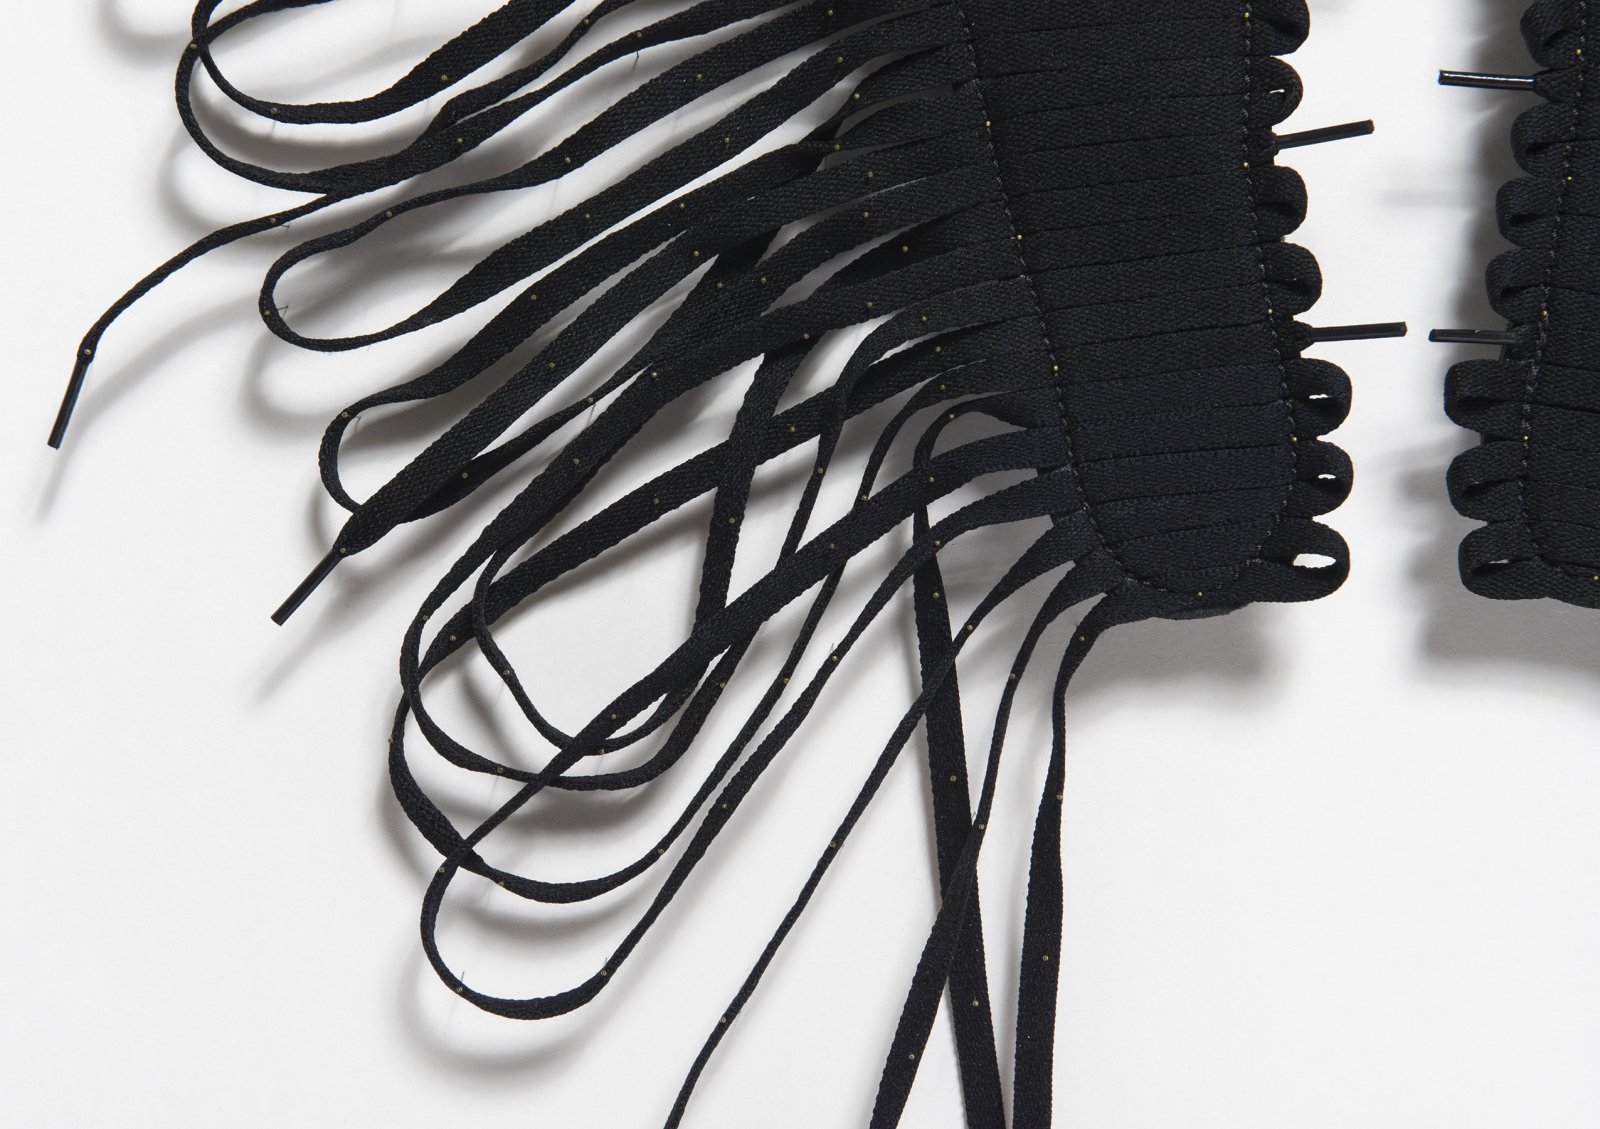 Brian Jungen,Cassius(detail), 2016, air jordan insoles, shoelaces, insect pins, 31 x 31 x 1 in. (81 x 81 x 3 cm). Courtesy Casey Kaplan, New York